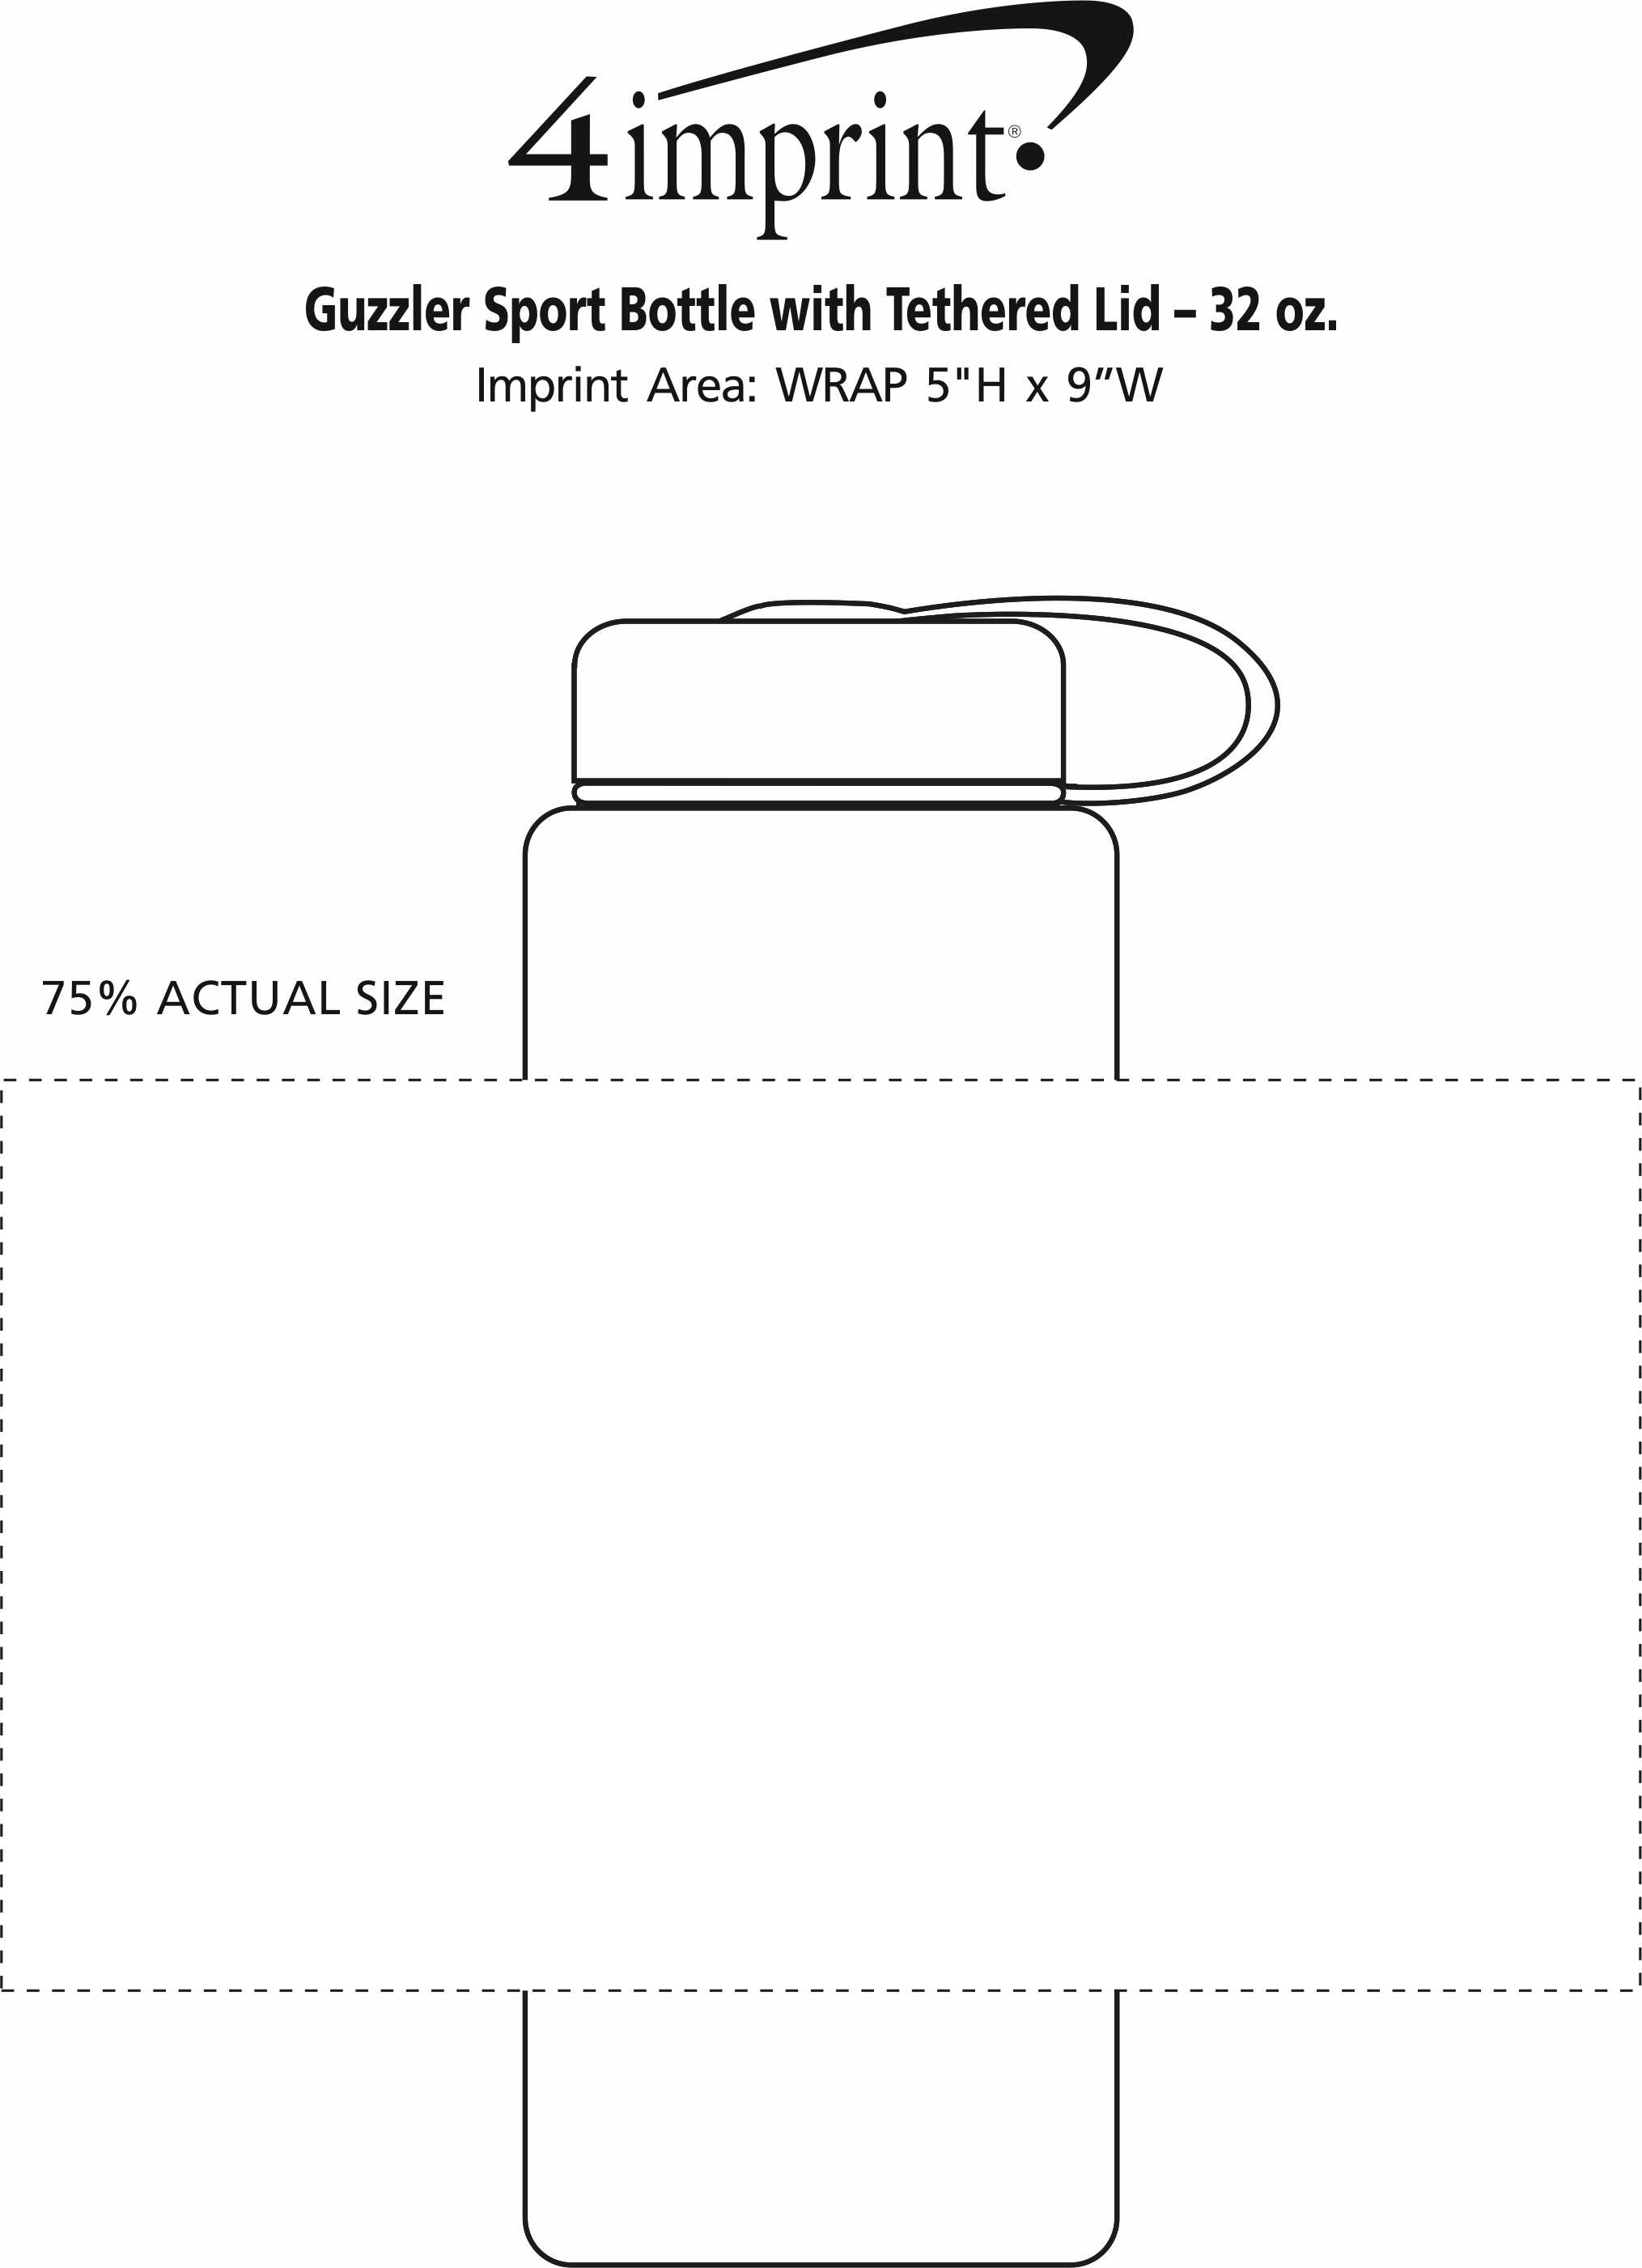 Imprint Area of Guzzler Sport Bottle with Tethered Lid - 32 oz.